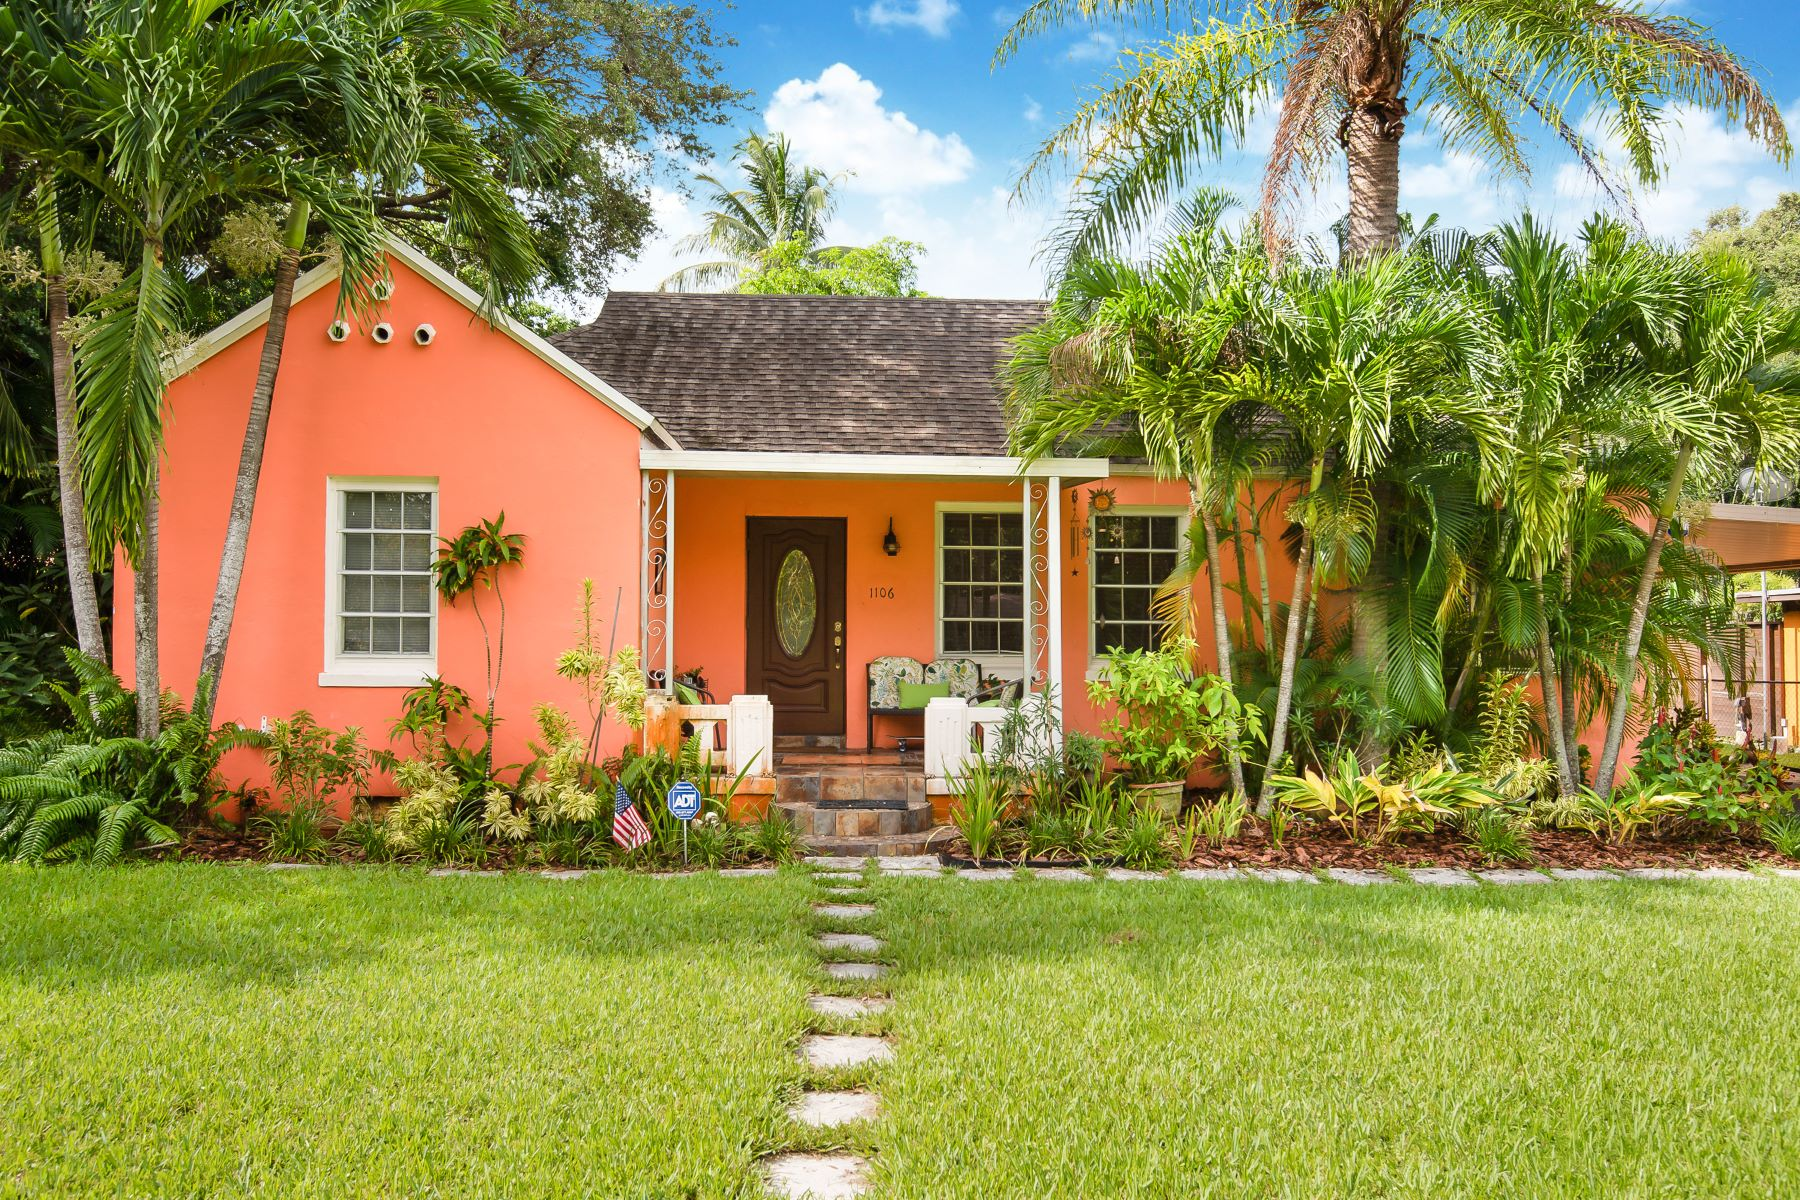 Single Family Homes for Sale at Biscayne Park, Florida 33161 United States